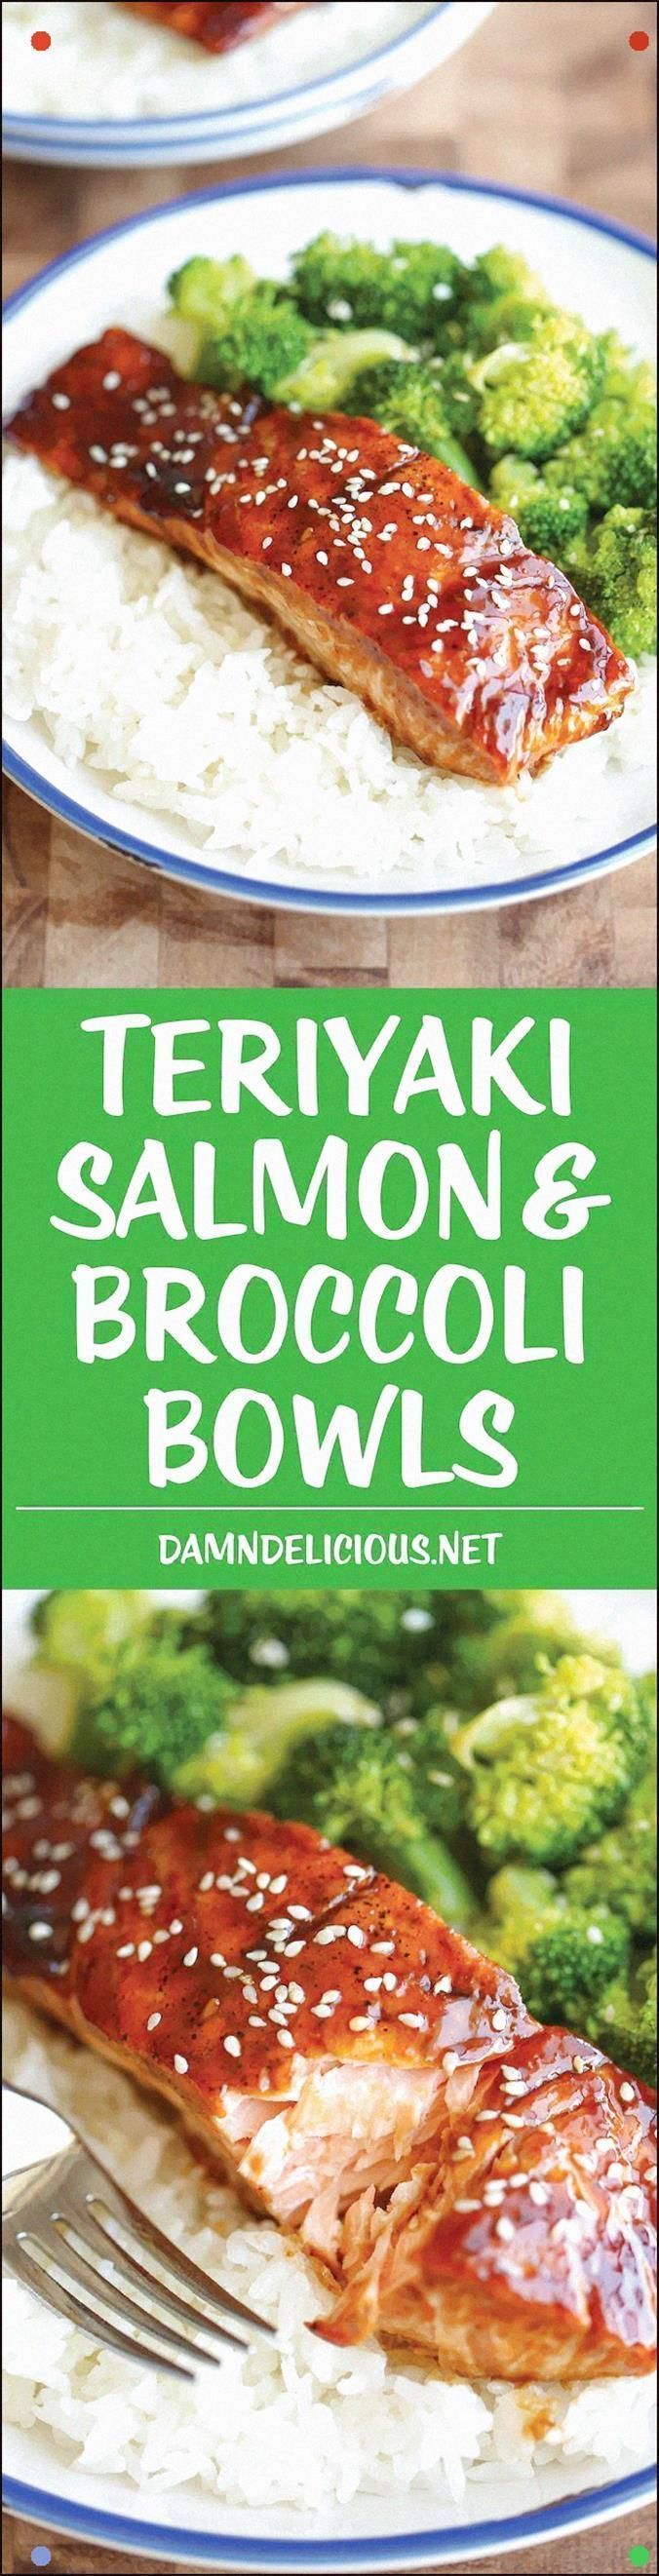 Teriyaki Salmon And Broccoli Bowls There's No Need For Takeout Anymore... You Can Easily Make Homemade #Salmon Teriyaki Bowls In Minutes #teriyakisalmon Teriyaki Salmon And Broccoli Bowls There's No Need For Takeout Anymore... You Can Easily Make Homemade #Salmon Teriyaki Bowls In Minutes #salmonteriyaki Teriyaki Salmon And Broccoli Bowls There's No Need For Takeout Anymore... You Can Easily Make Homemade #Salmon Teriyaki Bowls In Minutes #teriyakisalmon Teriyaki Salmon And Broccoli Bowls There' #teriyakisalmon